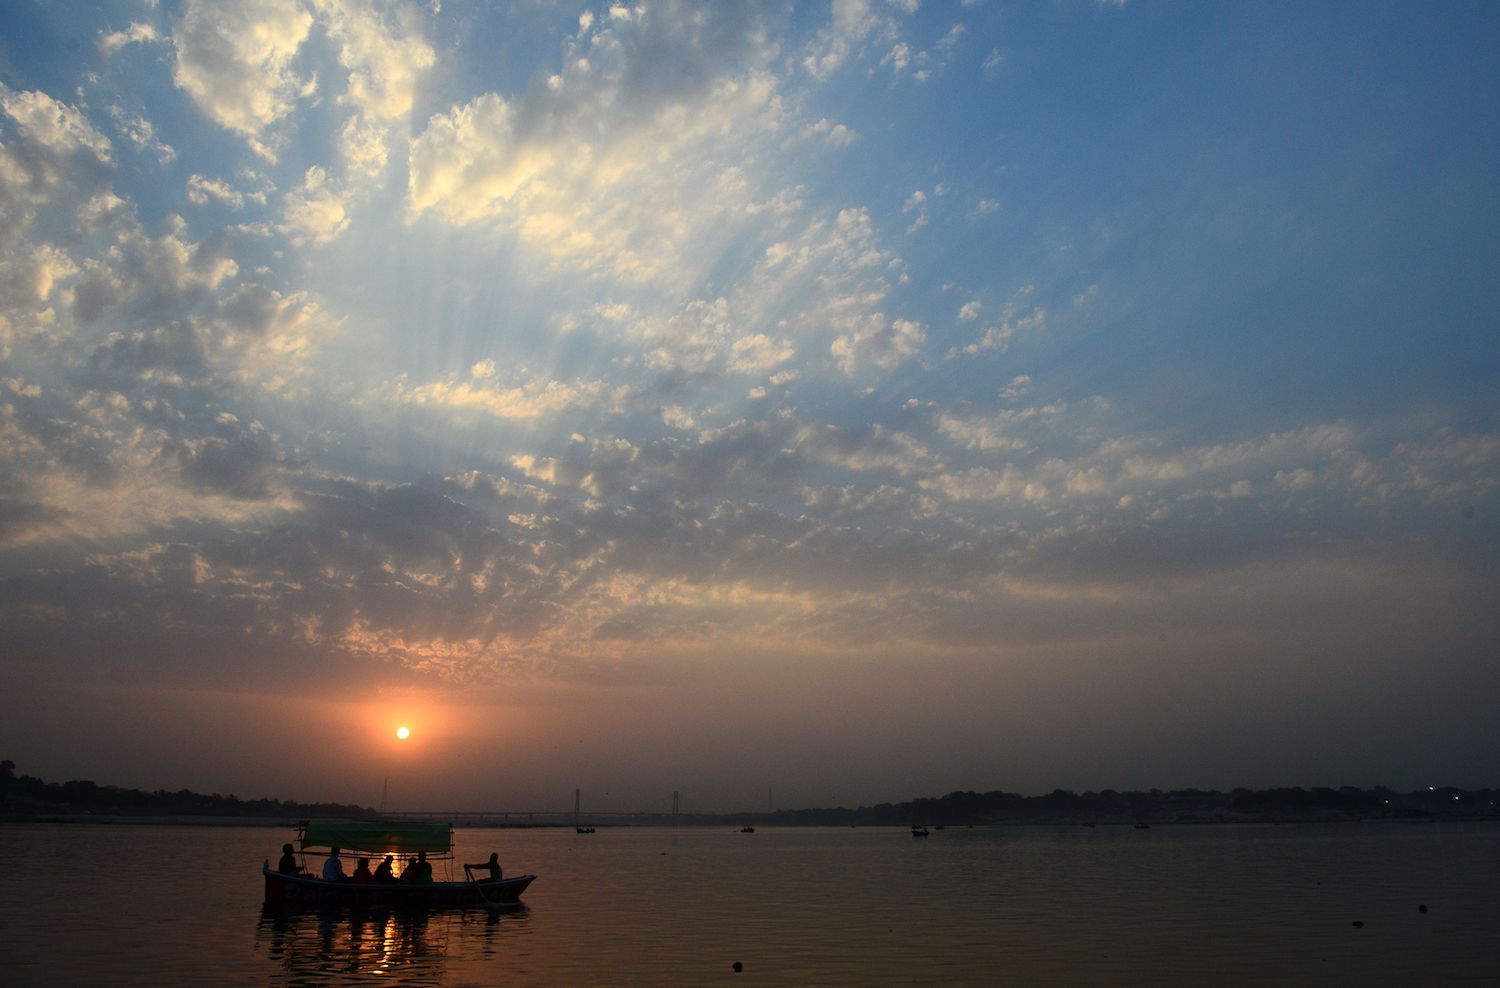 Indian people take an evening boat ride during sunset at the Sangam, the confluence of the Yamuna and Ganges river in Allahabad on March 23, 2018. / AFP PHOTO / SANJAY KANOJIA        (Photo credit should read SANJAY KANOJIA/AFP/Getty Images)